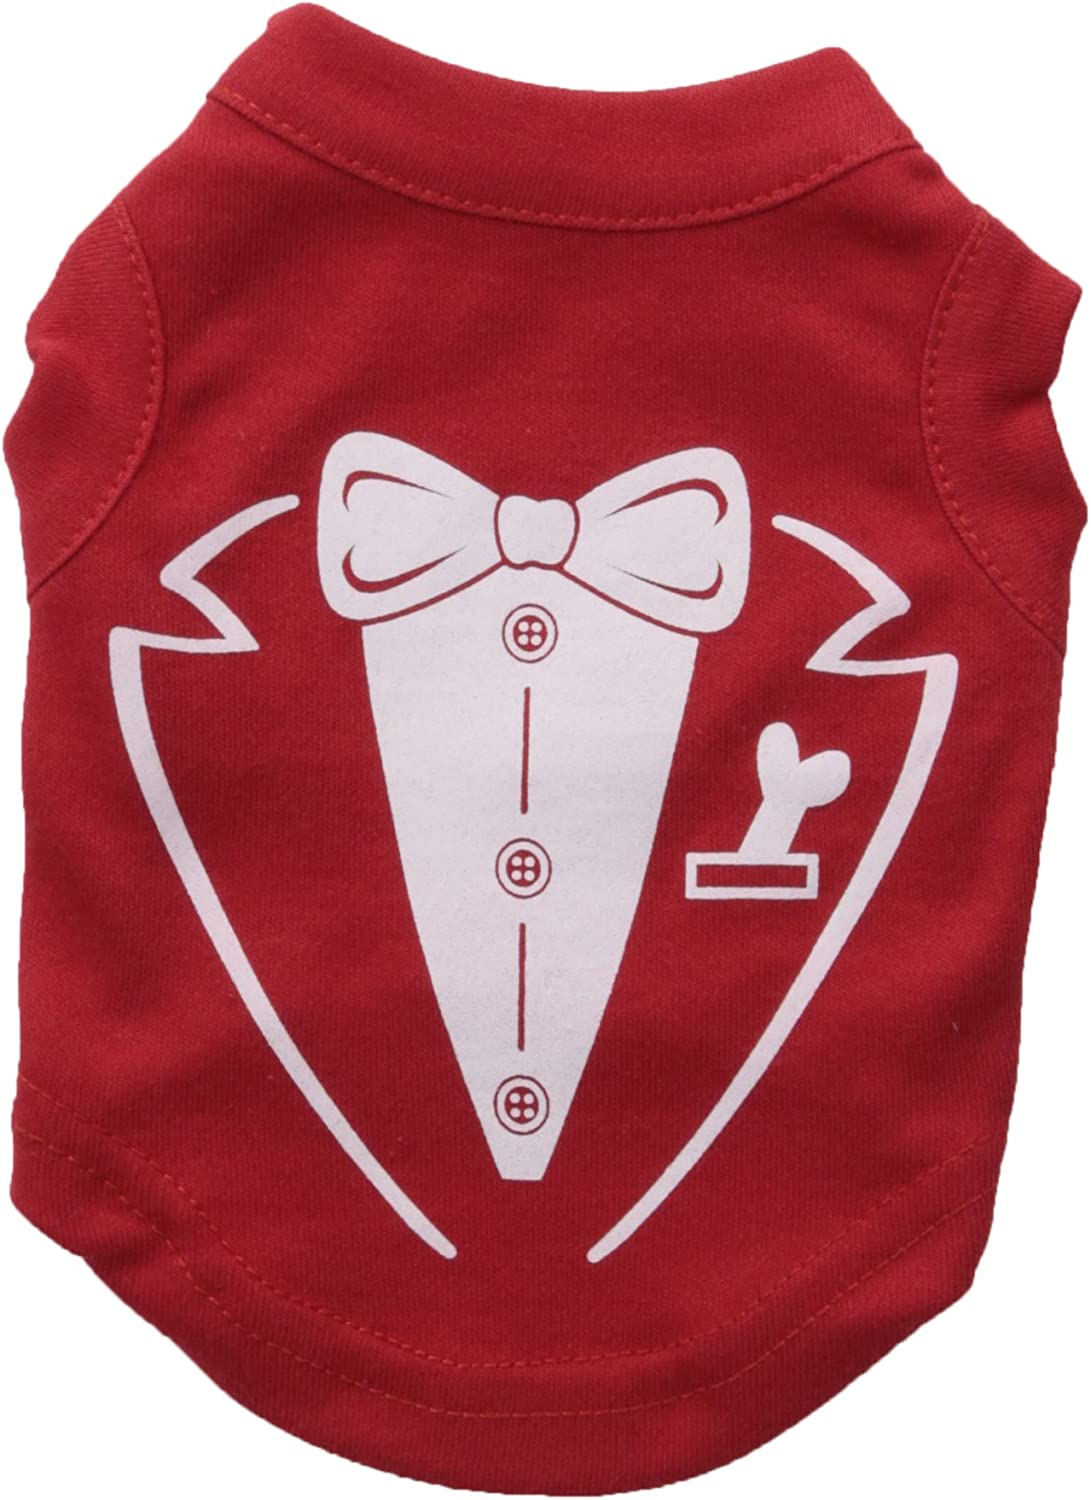 Mirage Pet Products Tuxedo Screen Print Shirt for Pets, XSmall, Red